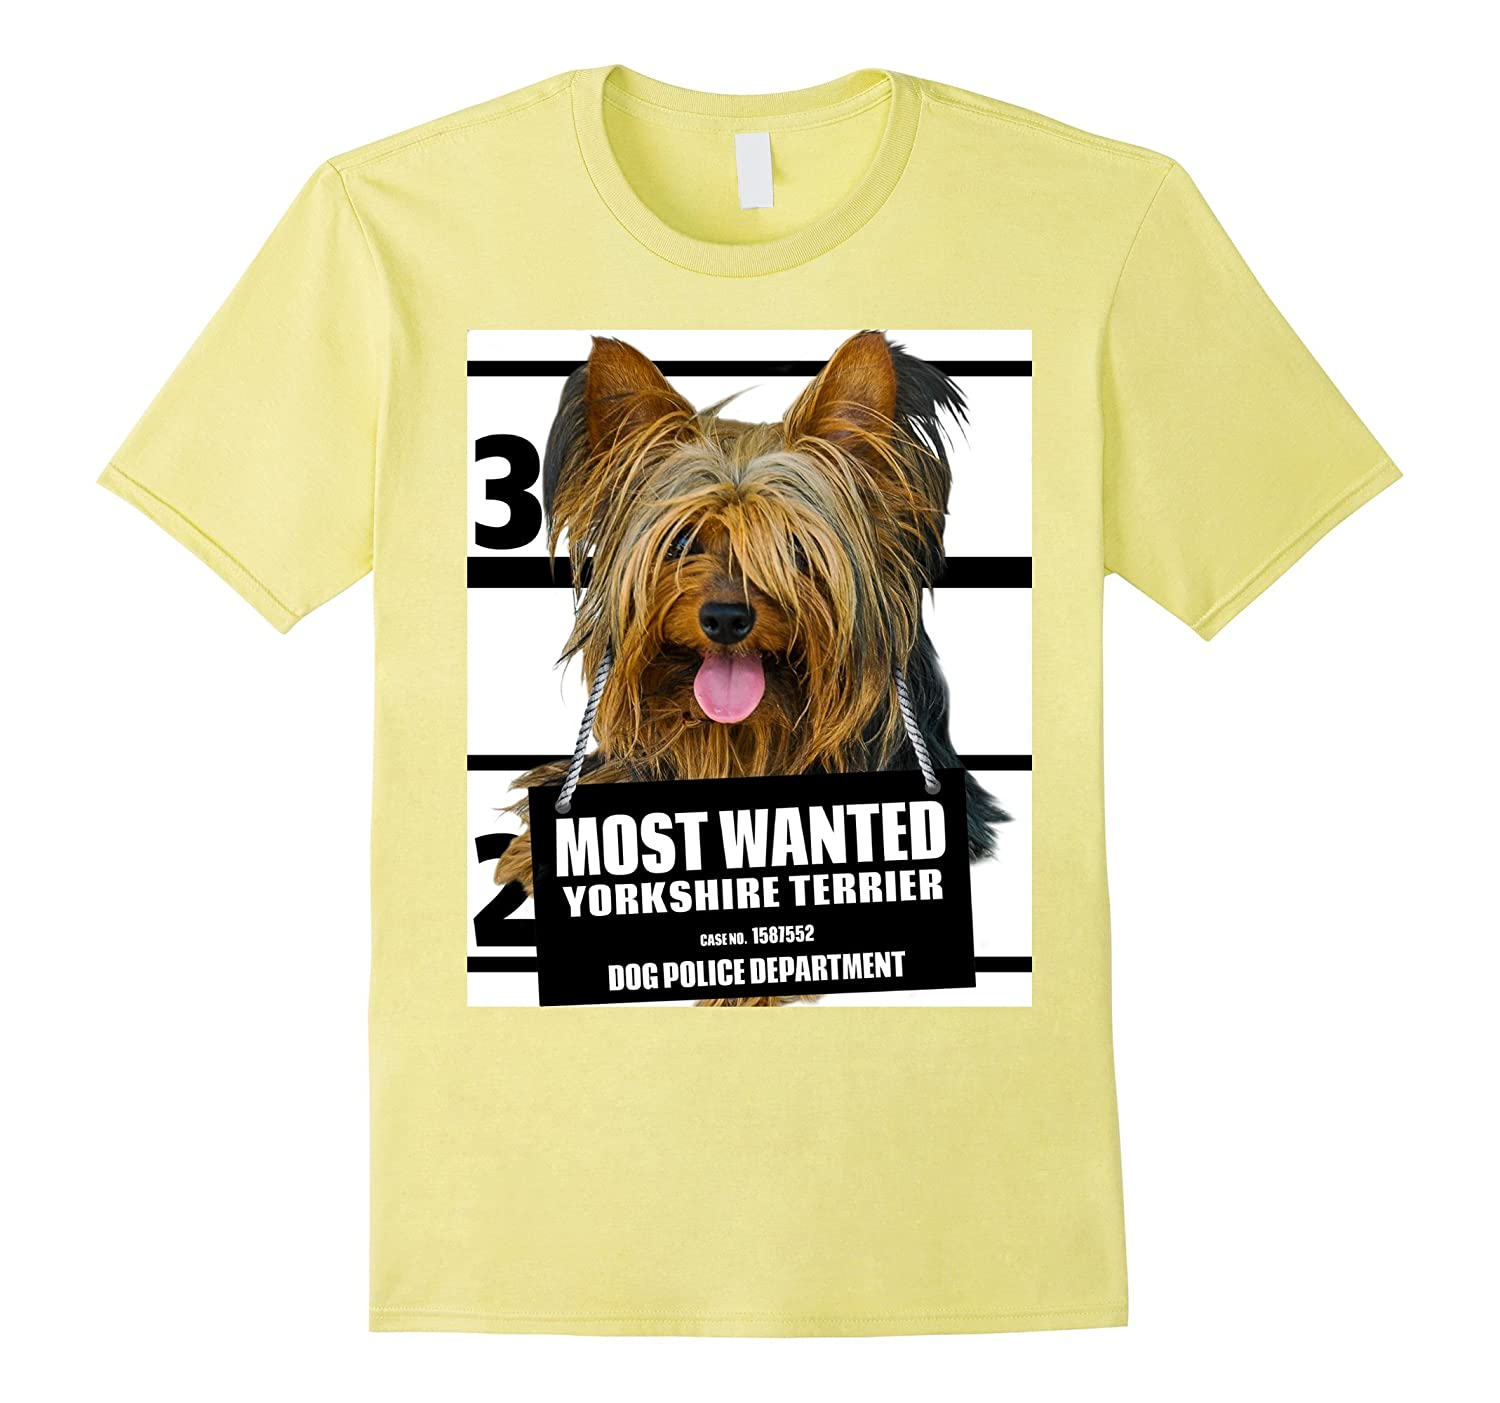 Most Wanted Yorkshire Terrier T-shirt - Dog Tee Shirts - 28-Vaci